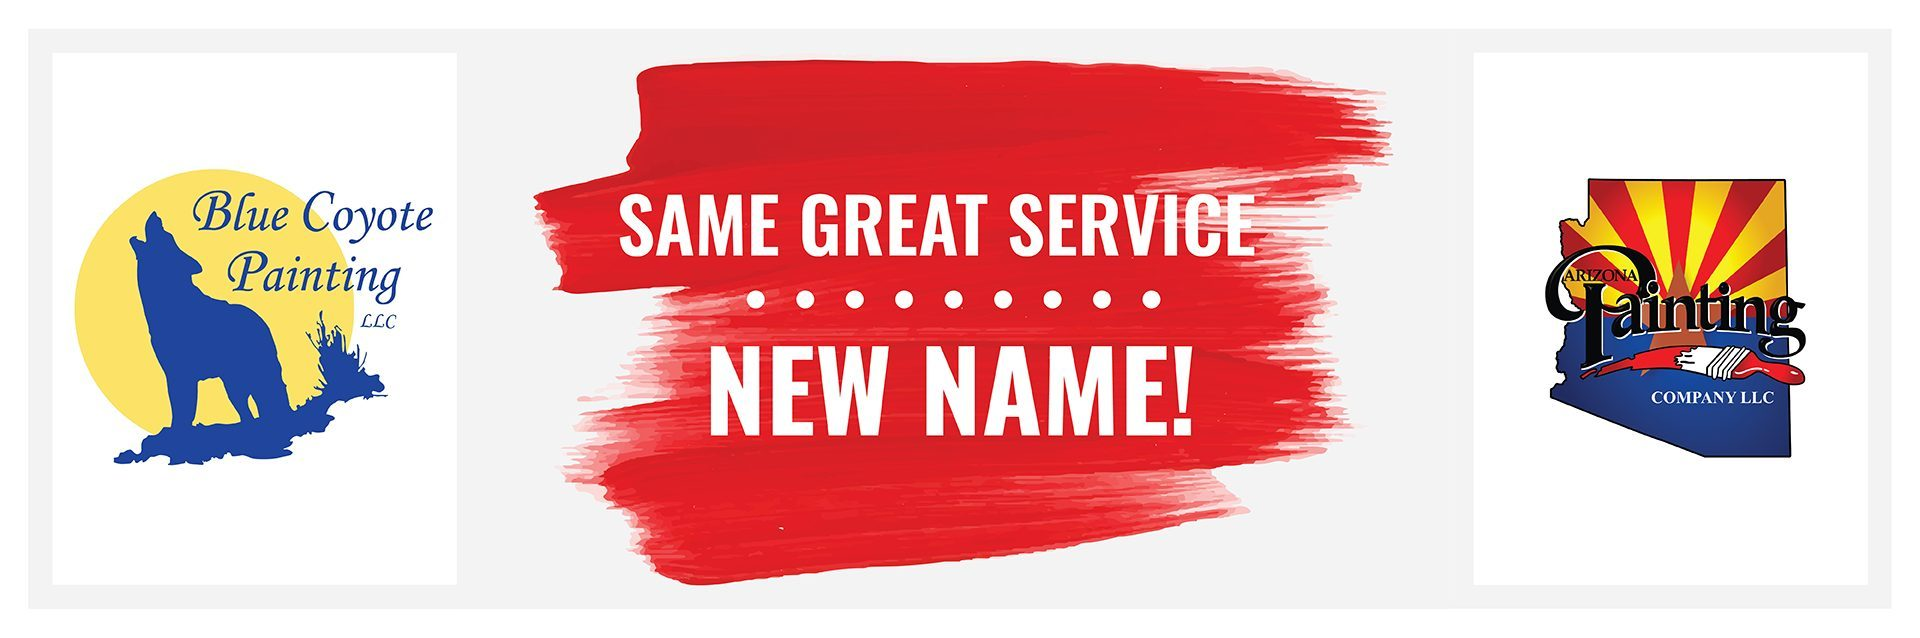 Blue Coyote / AZ Paint - Same Great Service with a New Name